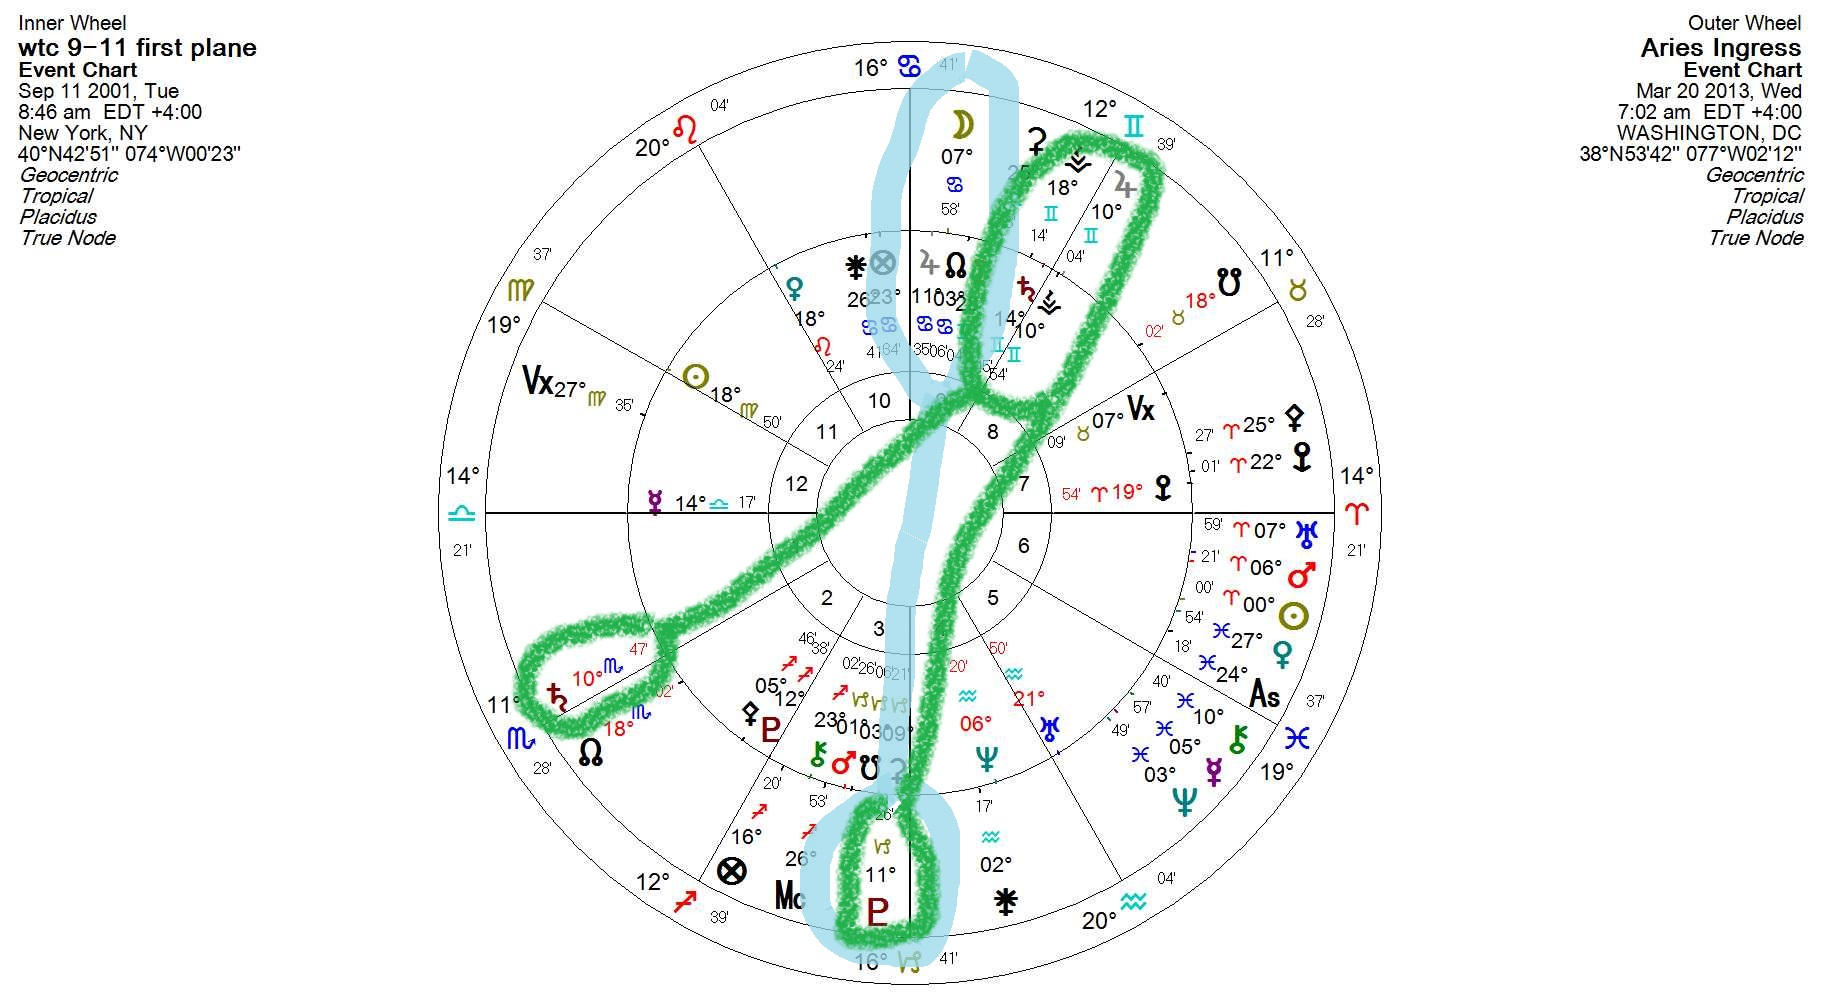 Weekly weather march 18 2013 anne ortelee astrology however i apparently needed to be quiet this past week silent listening taken out of space and time i had to get silent to listen to mercury whispering nvjuhfo Gallery